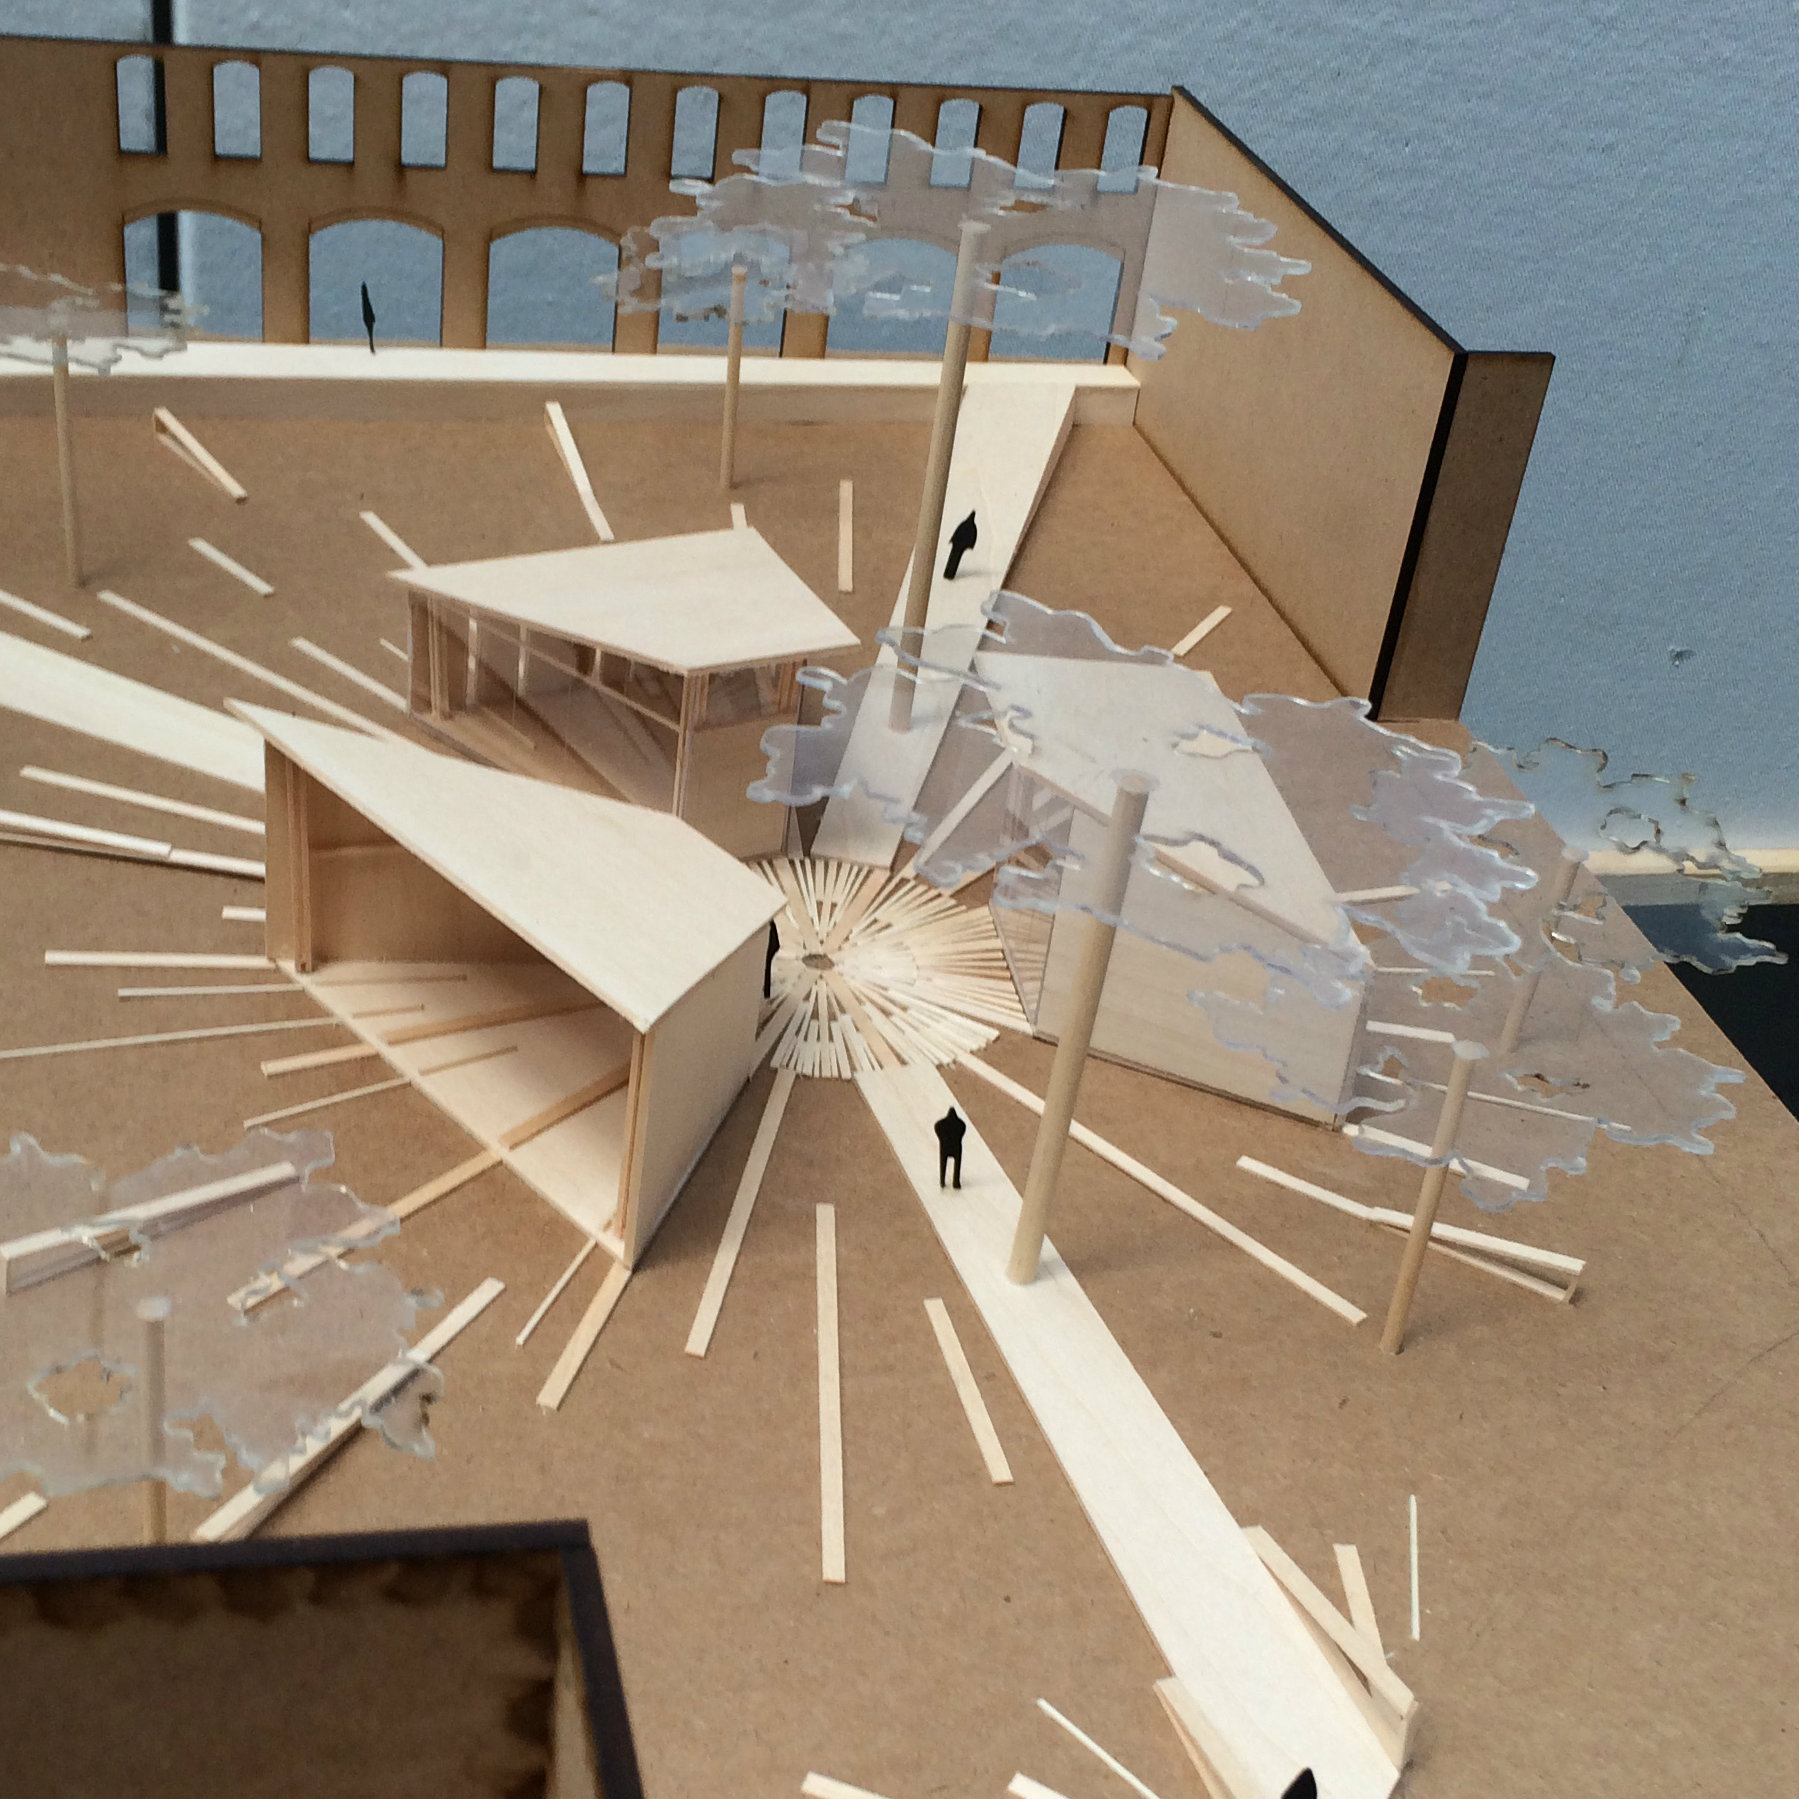 wooden model of a circular building